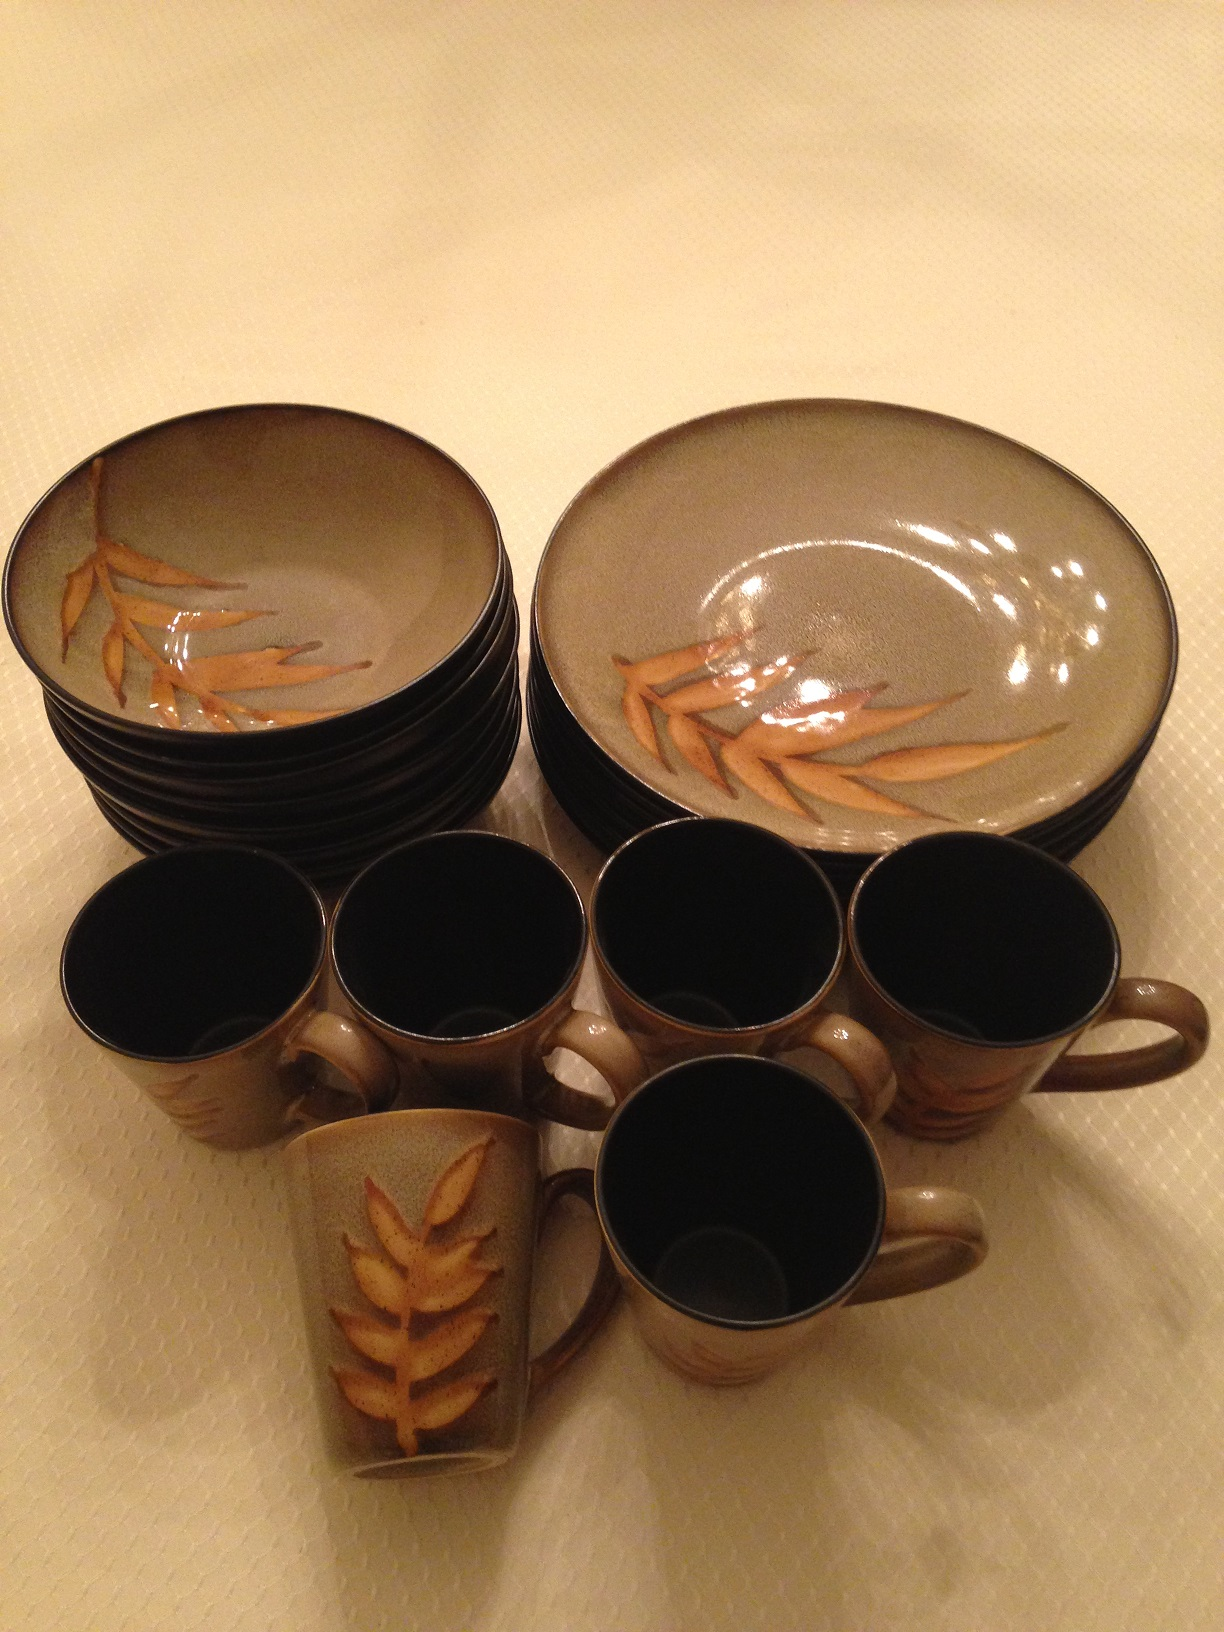 Used     Dinnerware Set of 6 inc Mugs, Cups, and Plates